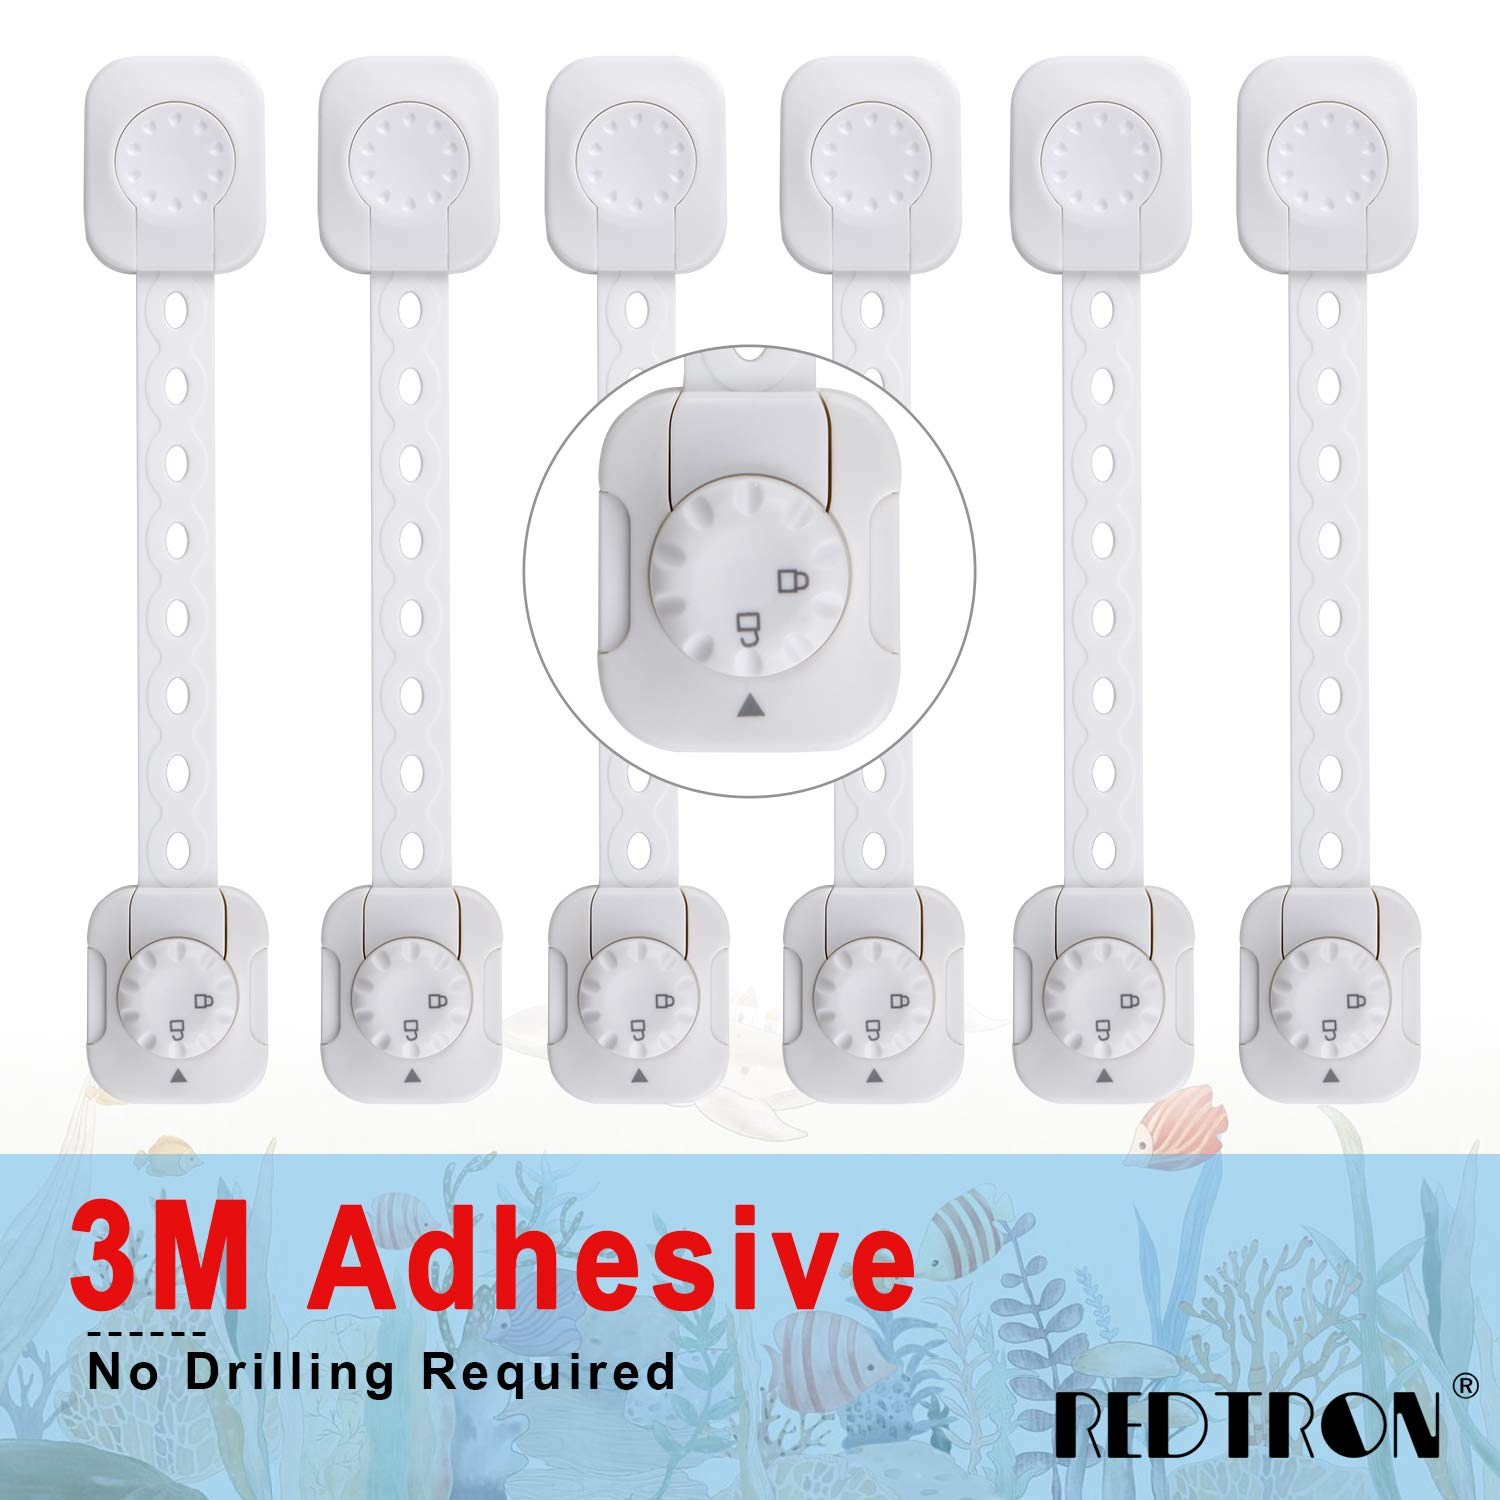 Child Proof Safety Locks[Upgraded], 6 Pack Baby Proof Cabinet Locks with Adjustable Strap/3M Adhesive, Baby Proof Double Lock System for Cabinets, Drawers, Oven, Fridge, Toilet Seat [No Drilling Neede